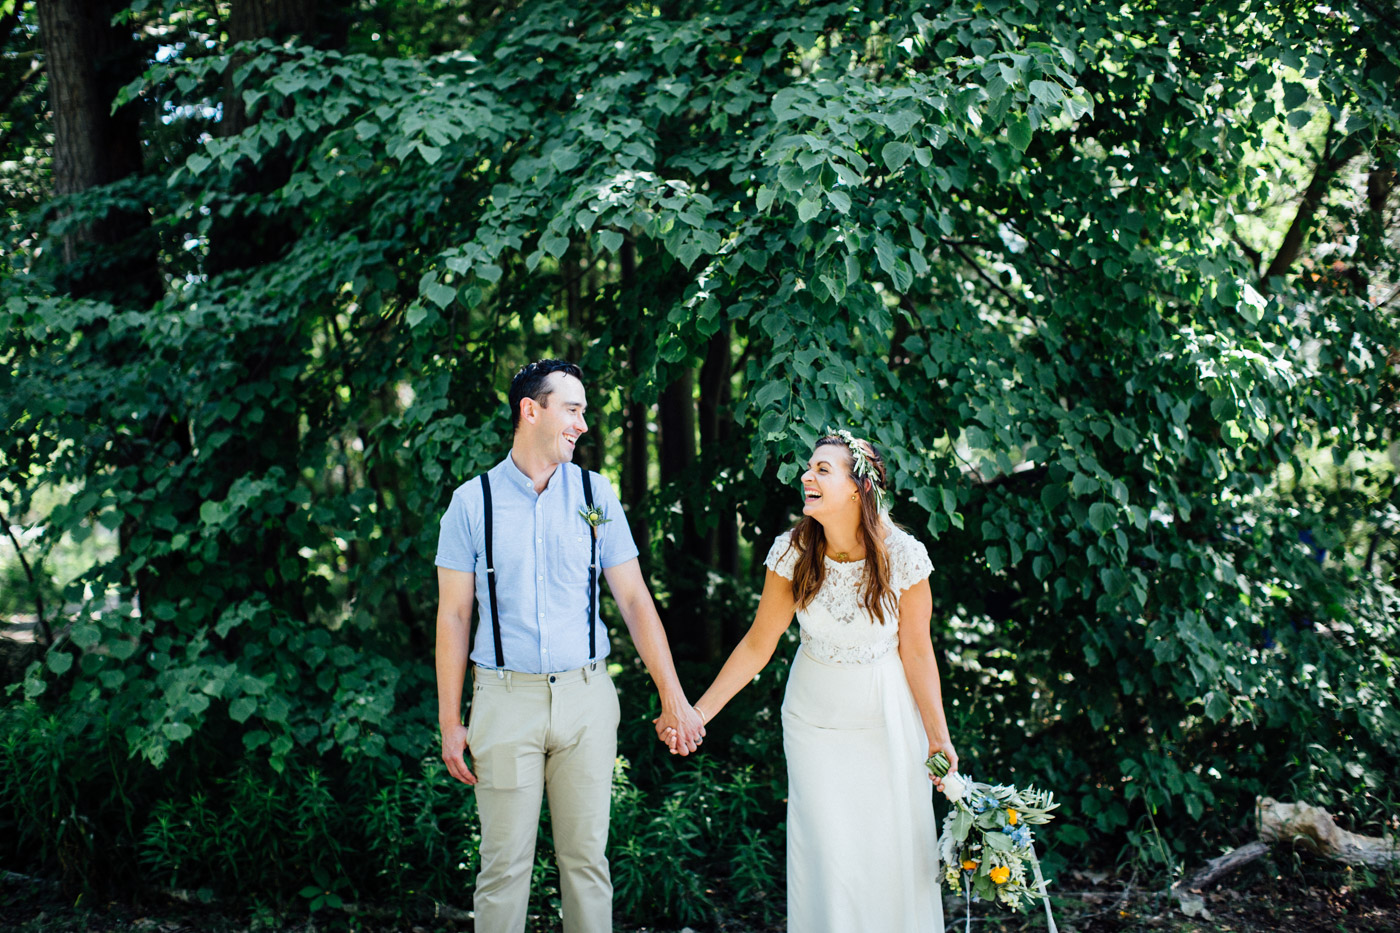 Kyla & Skyler Wedding 2016-326.jpg